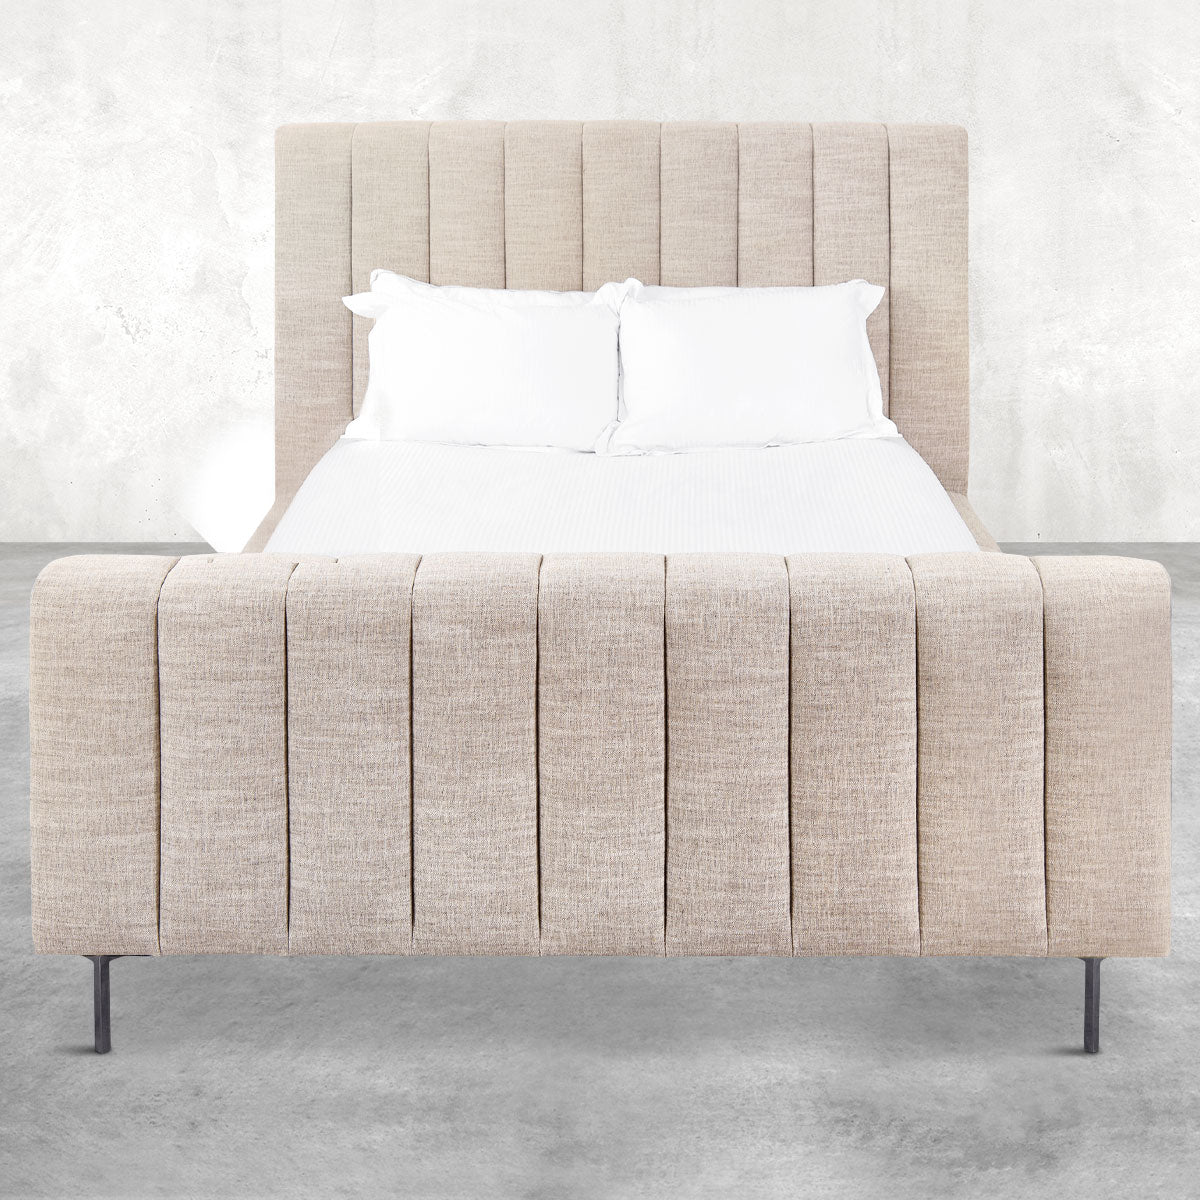 Shoreclub Bed with Footboard in Linen